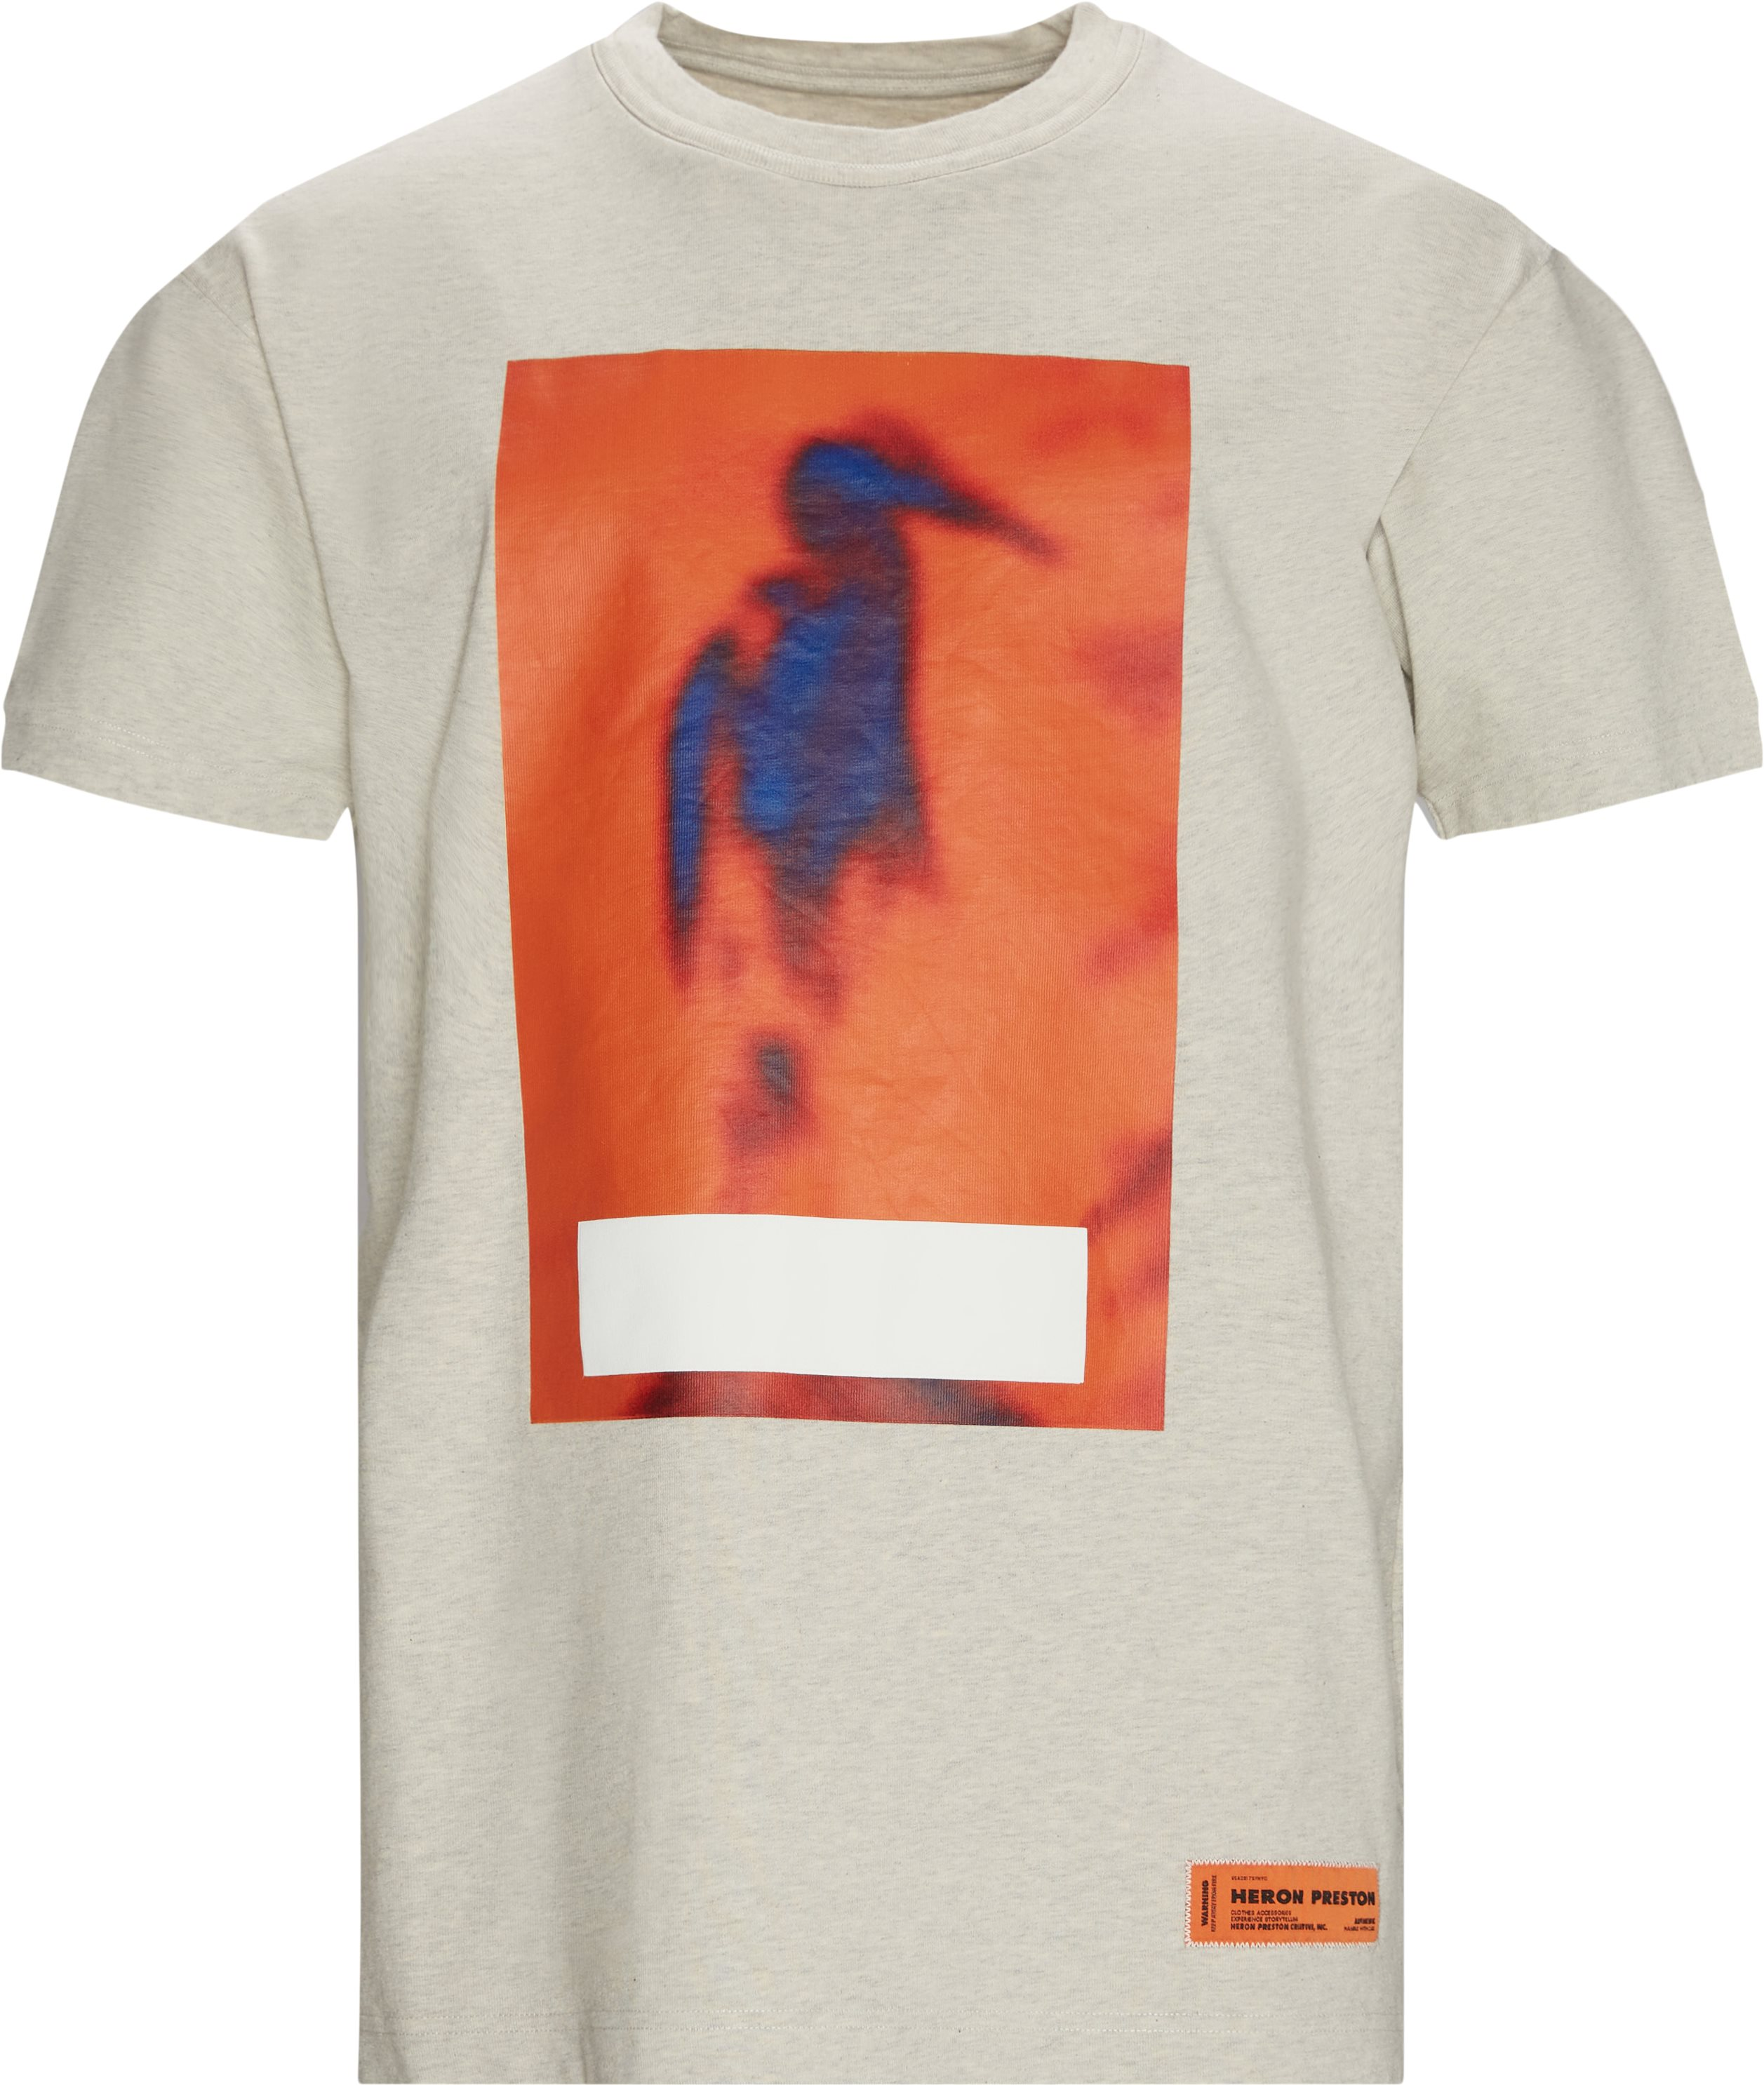 T-shirts - Oversize fit - Grey